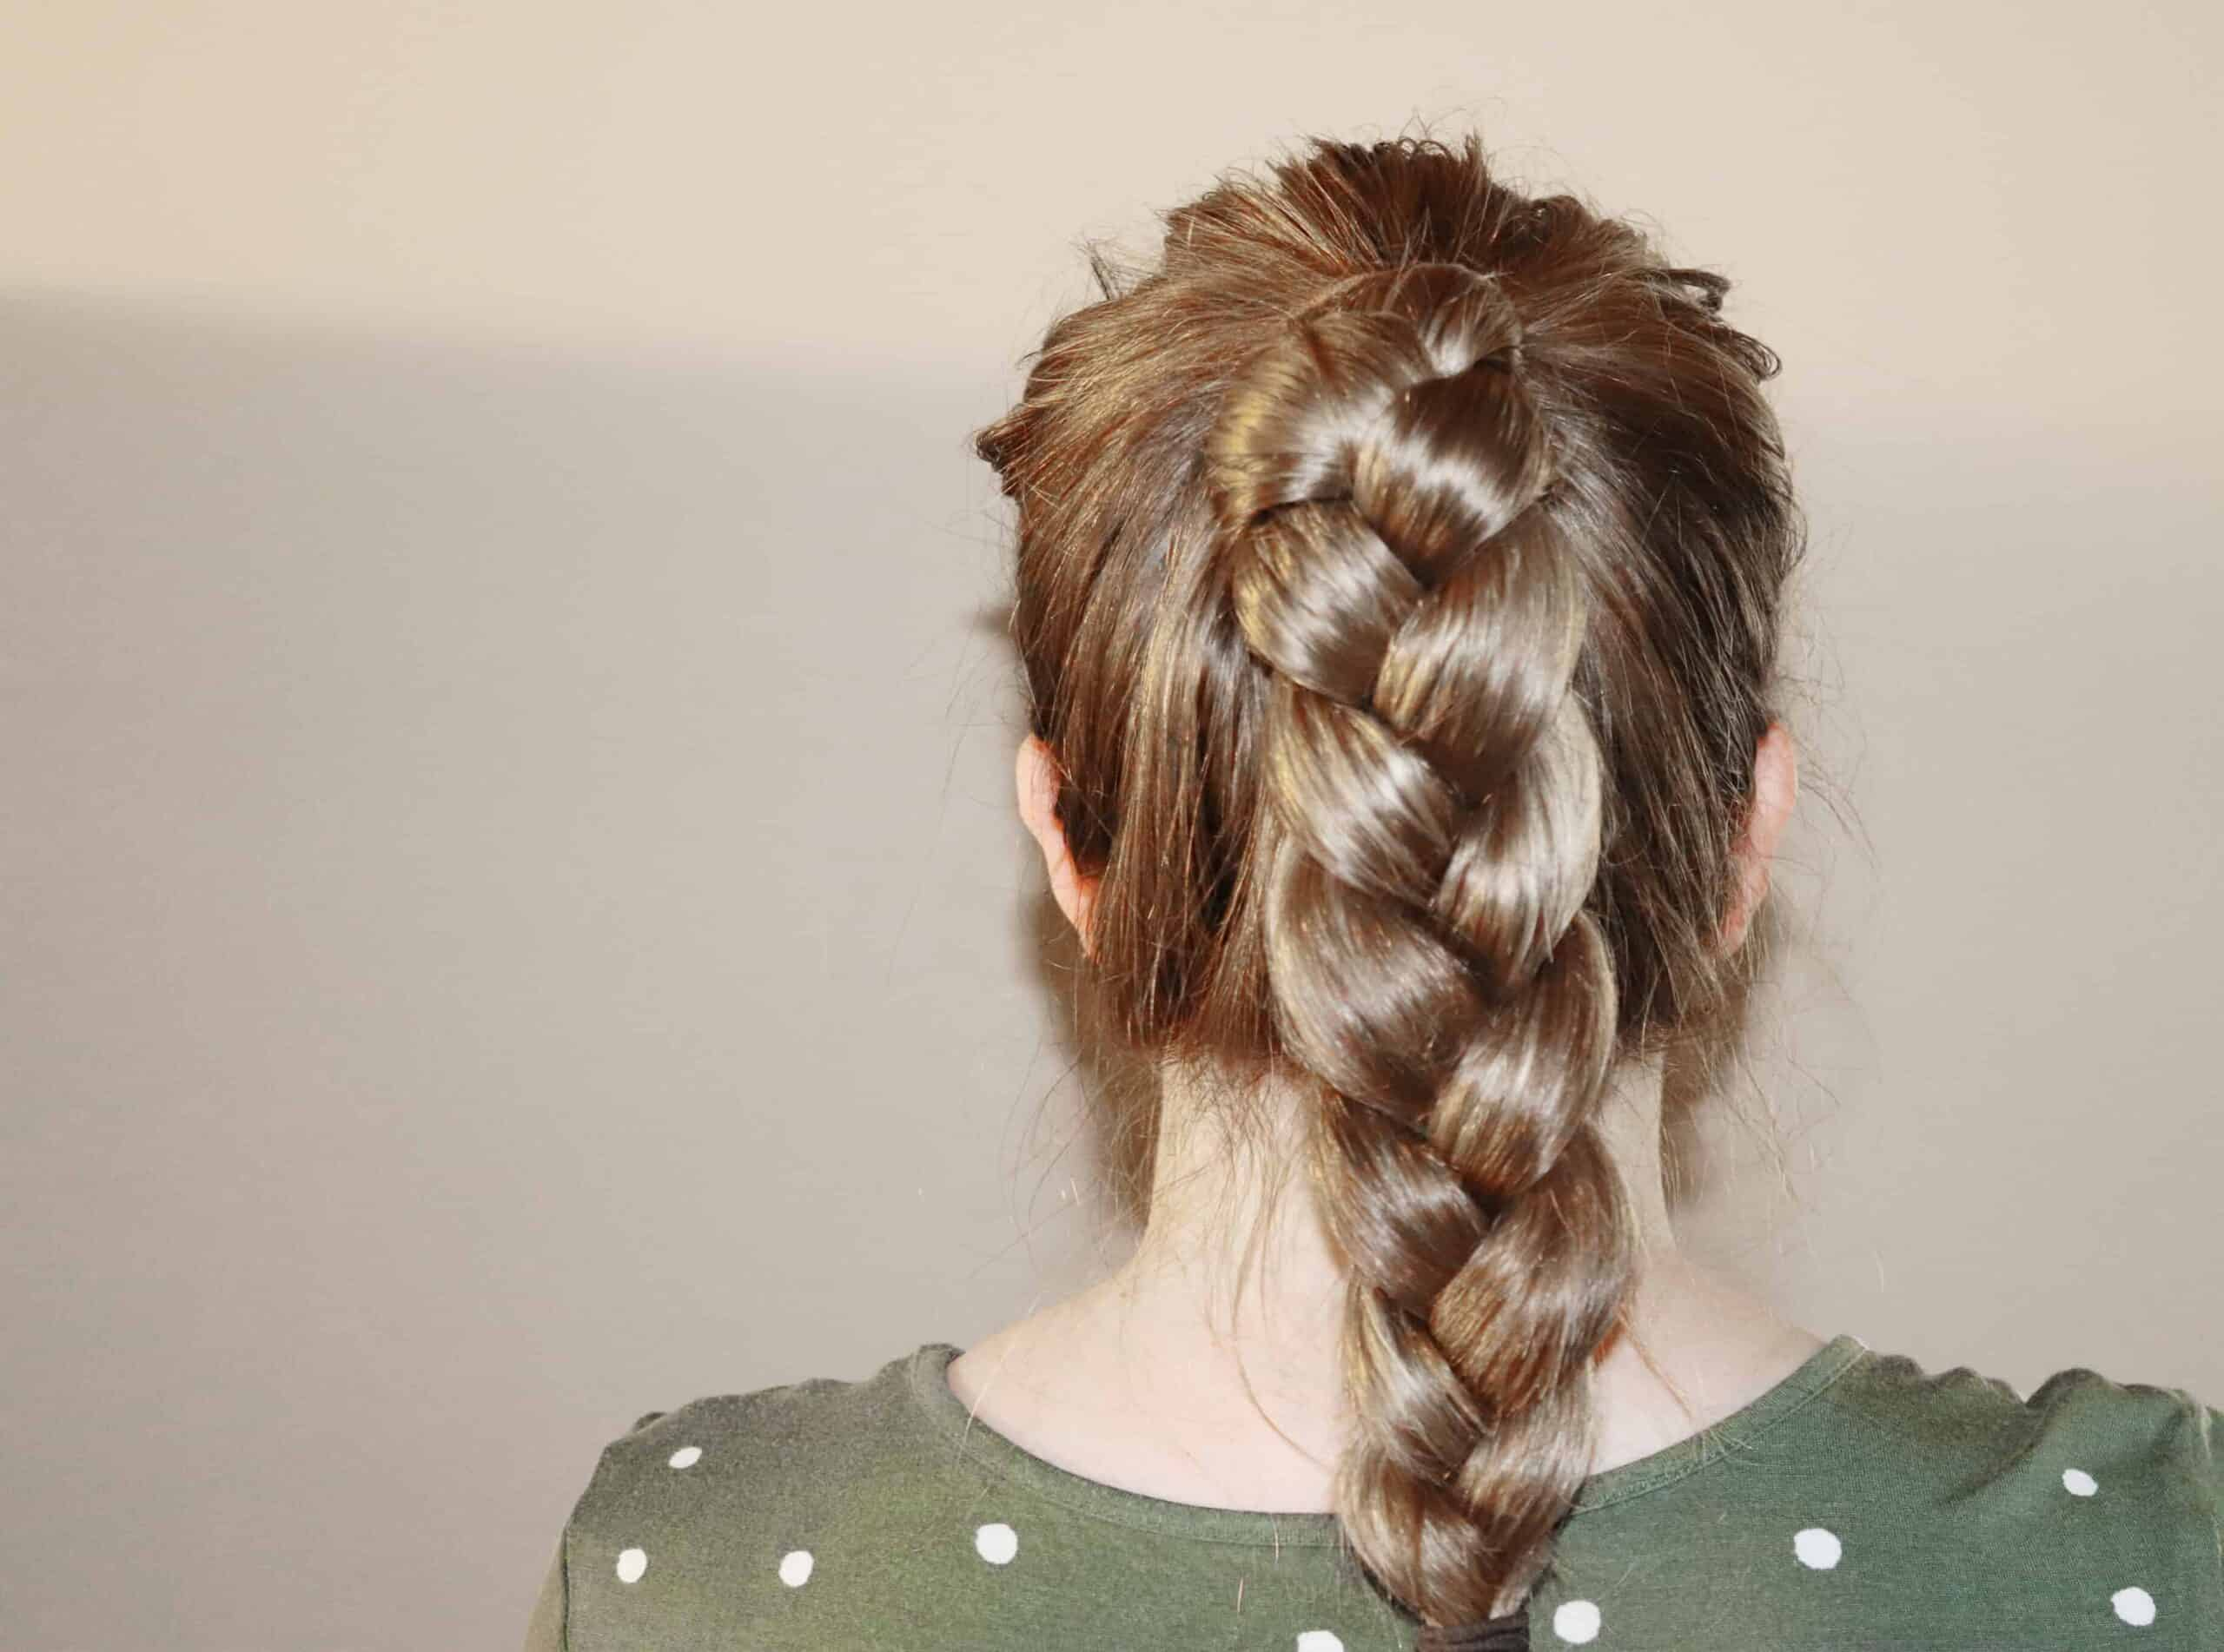 a woman with a braided ponytail